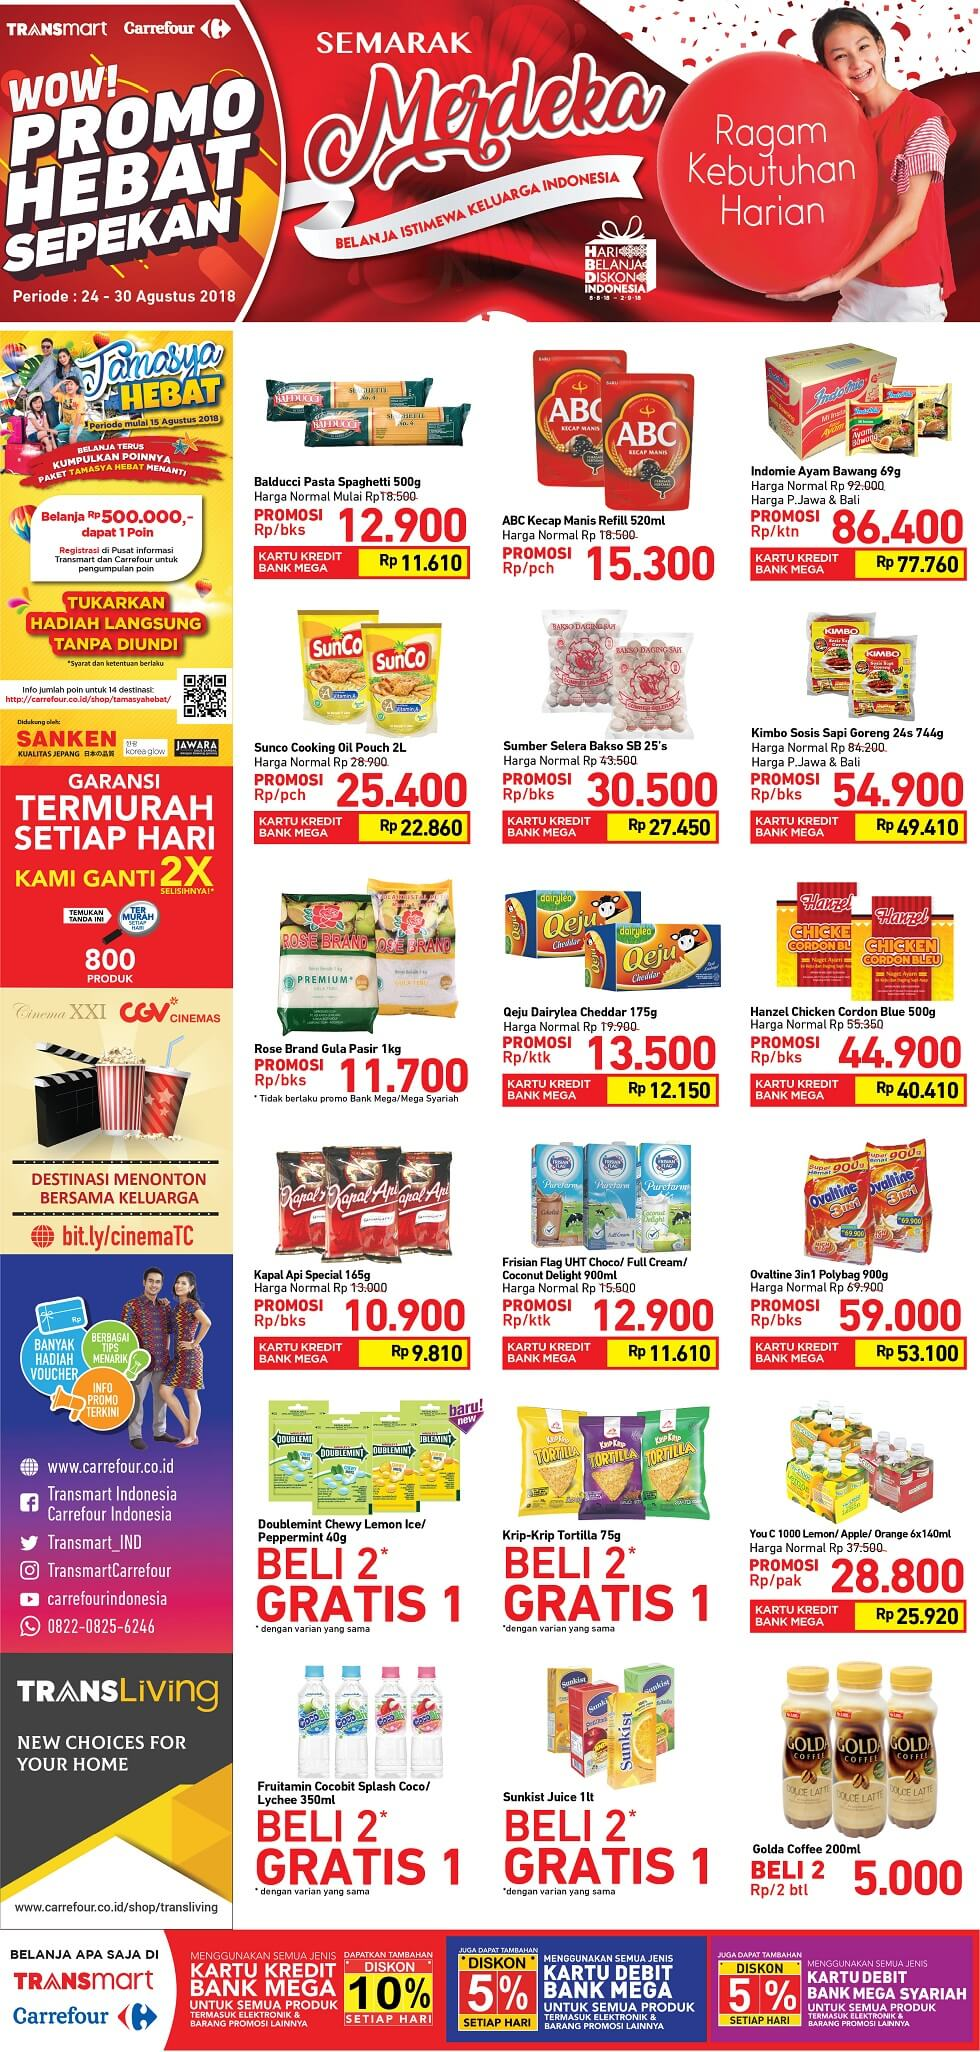 Katalog Carrefour 24 Aug 26 Kecap Manis Abc Reffill 520ml Type To Search Item In This Catalogue